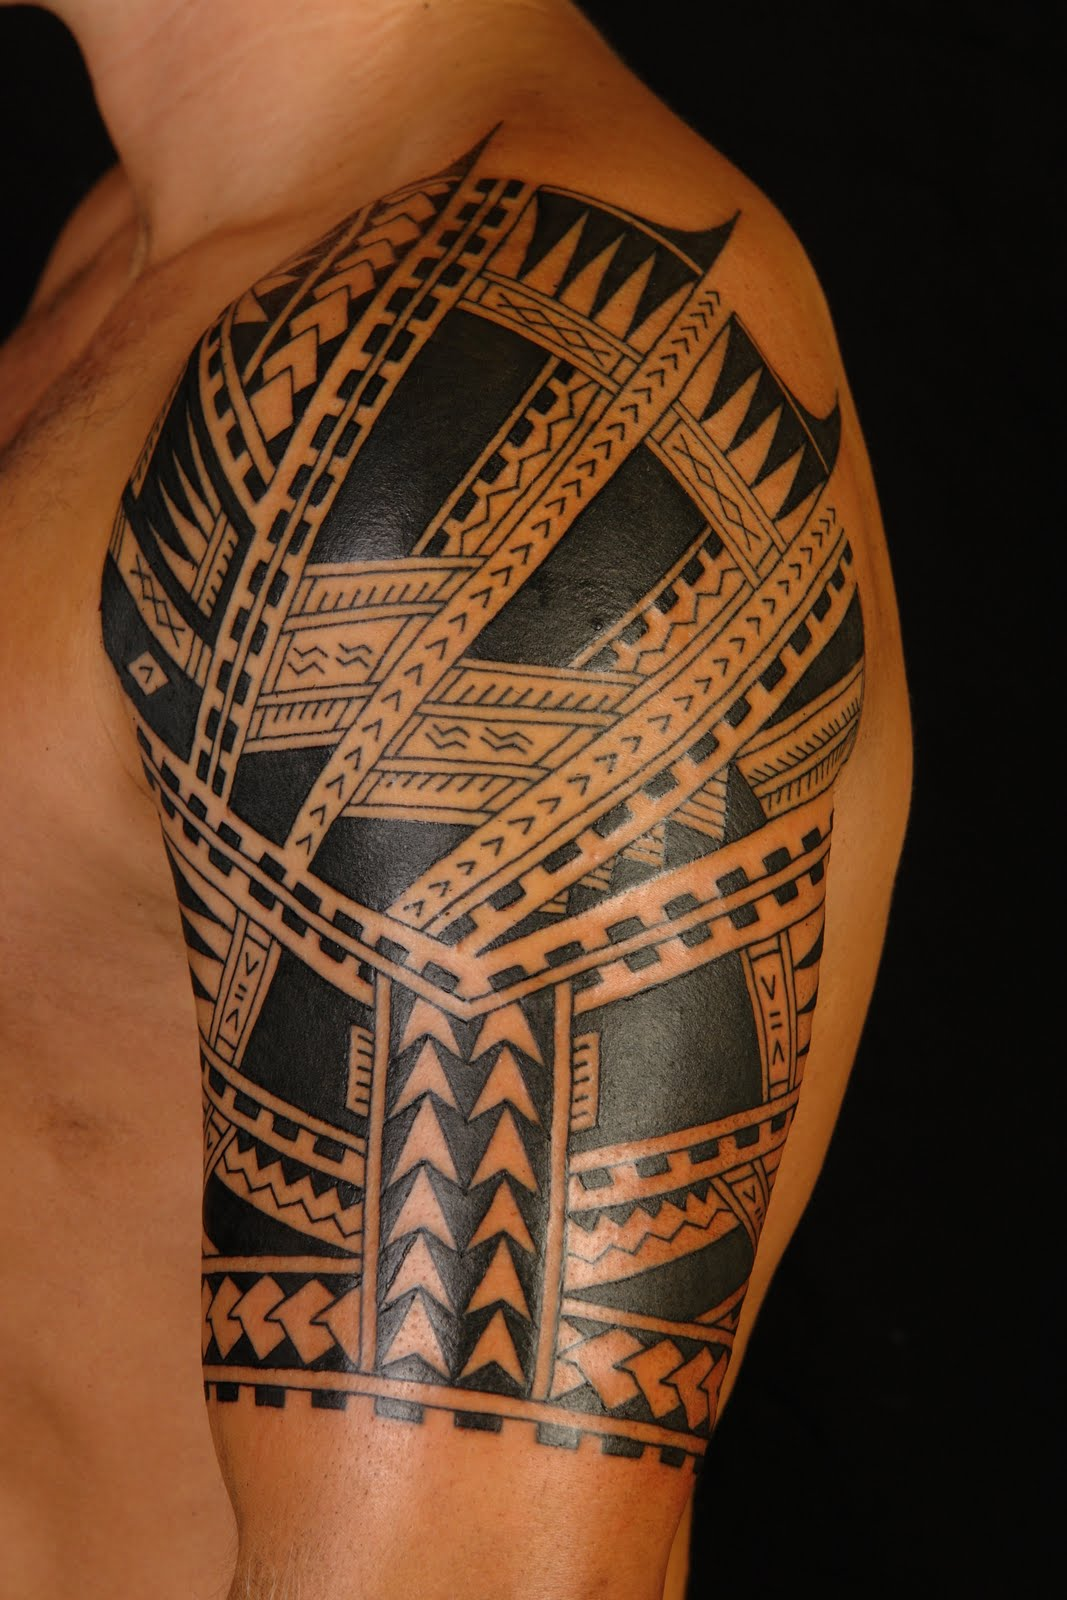 Tattoo Half Sleeve: Sleeve Tattoo Images & Designs